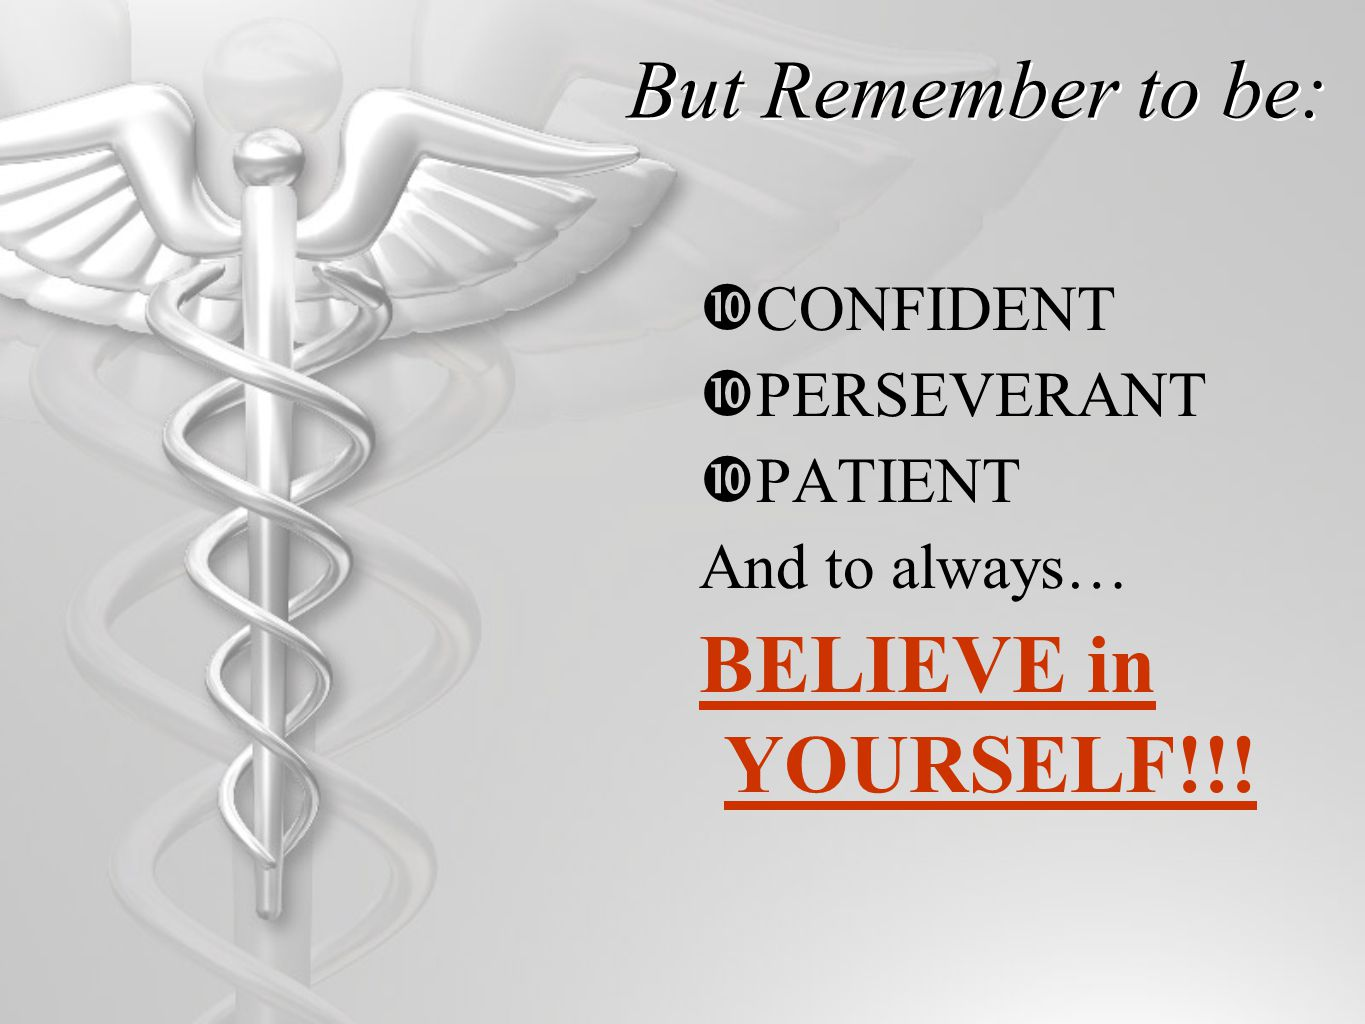 But Remember to be:  CONFIDENT  PERSEVERANT  PATIENT And to always… BELIEVE in YOURSELF!!!